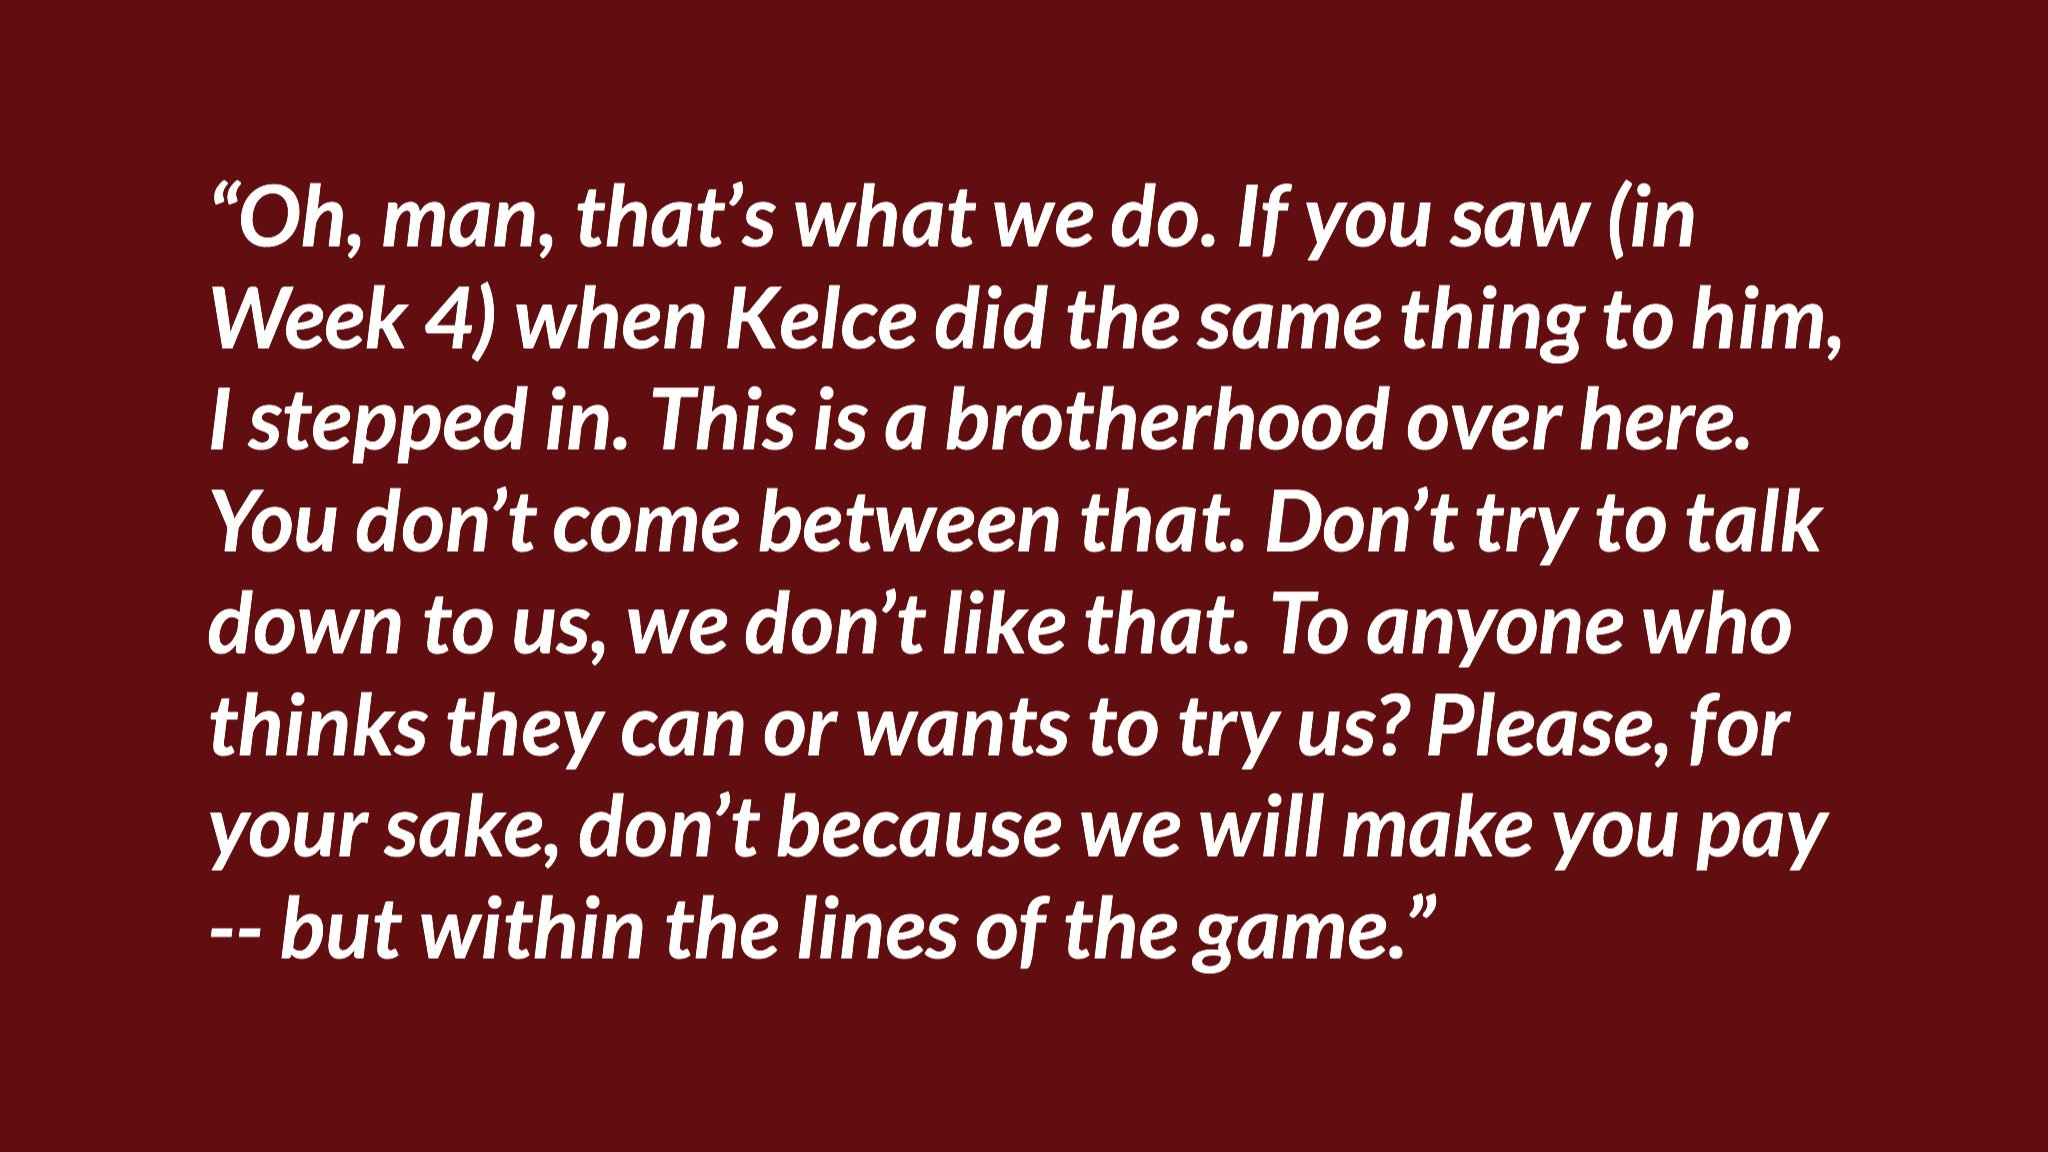 Nicholson re: Swearinger's penalty for shoving Garçon. »https://t.co/ts2ExVDT51 »@john_keim https://t.co/obmoTLh5Mj